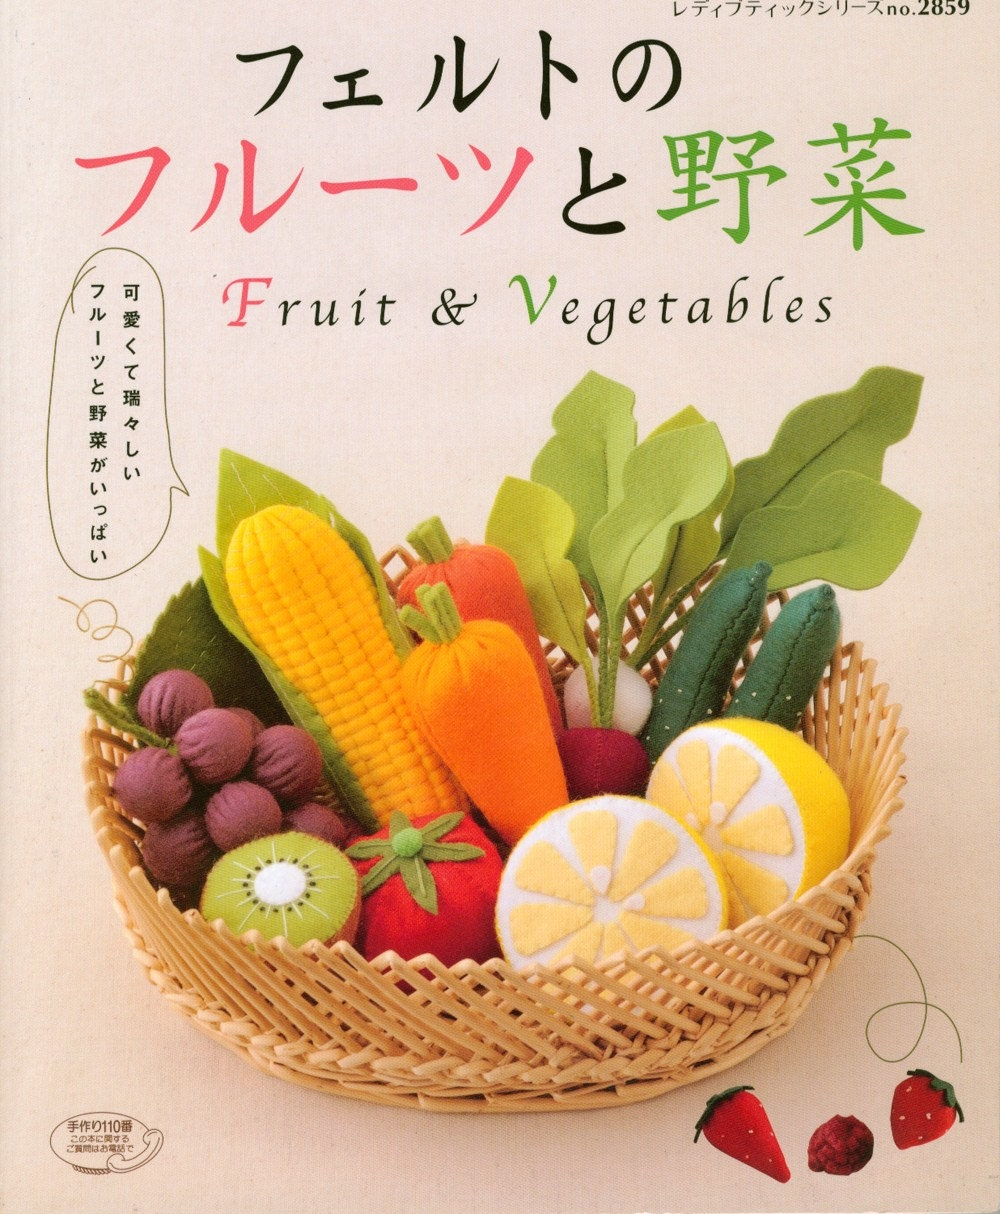 Felt Fruits and Vegetables - Japanese Felt Pattern Craft Book